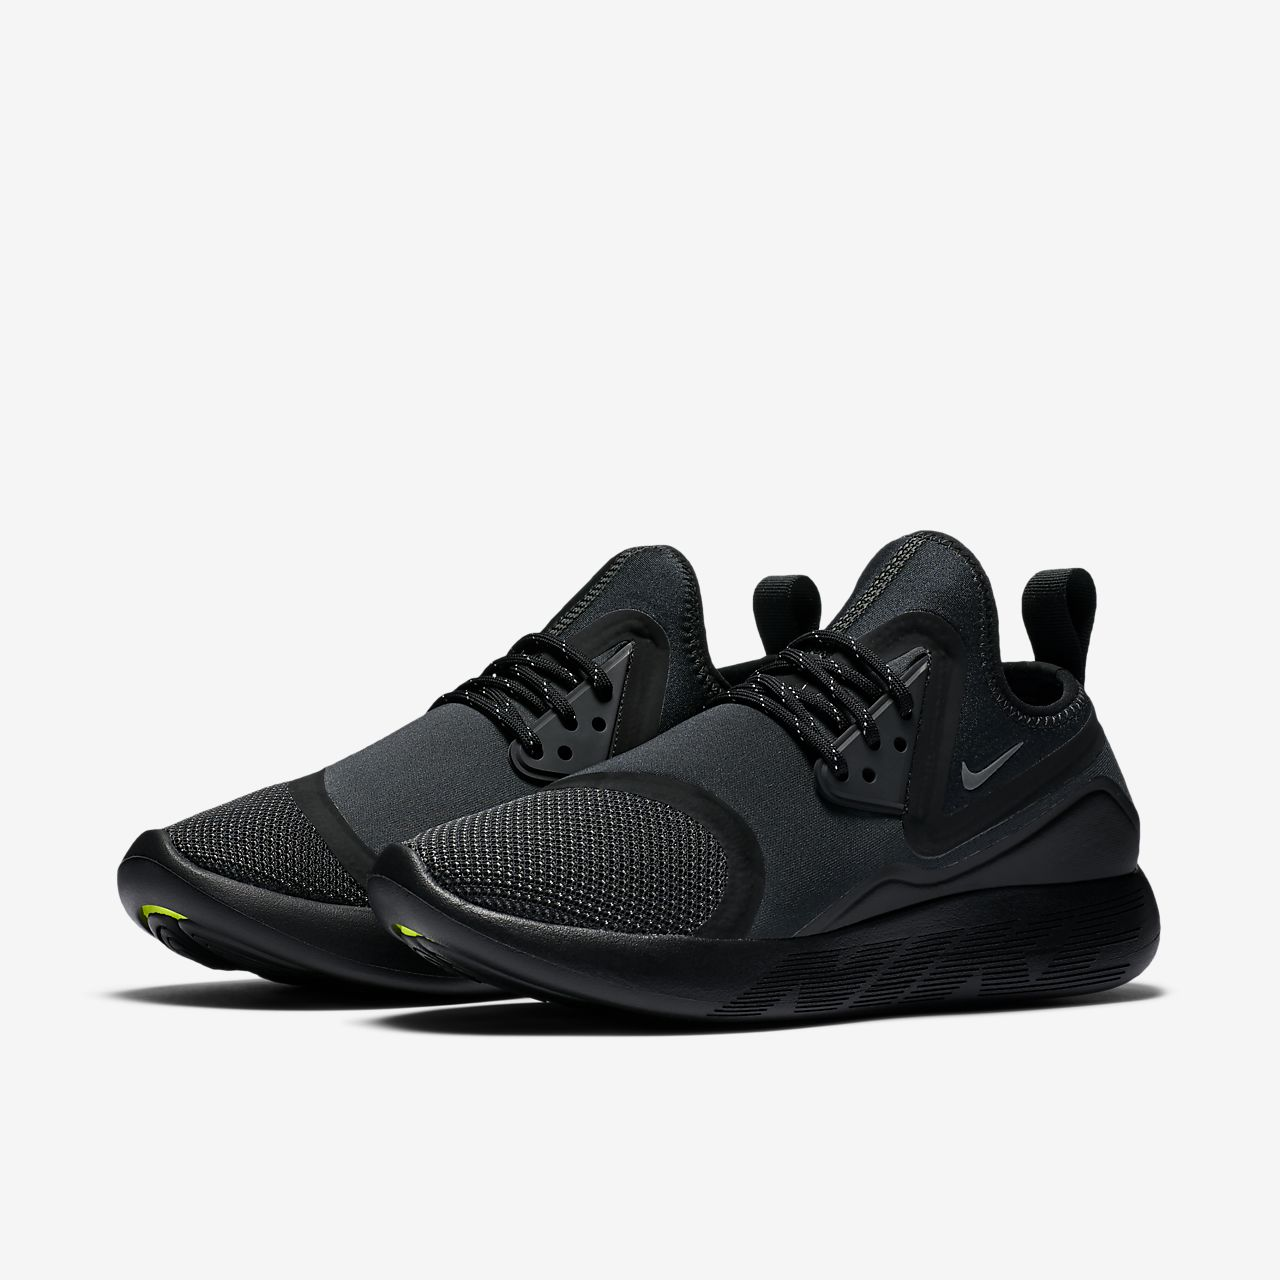 nike lunarcharge essential women 39 s shoe id. Black Bedroom Furniture Sets. Home Design Ideas